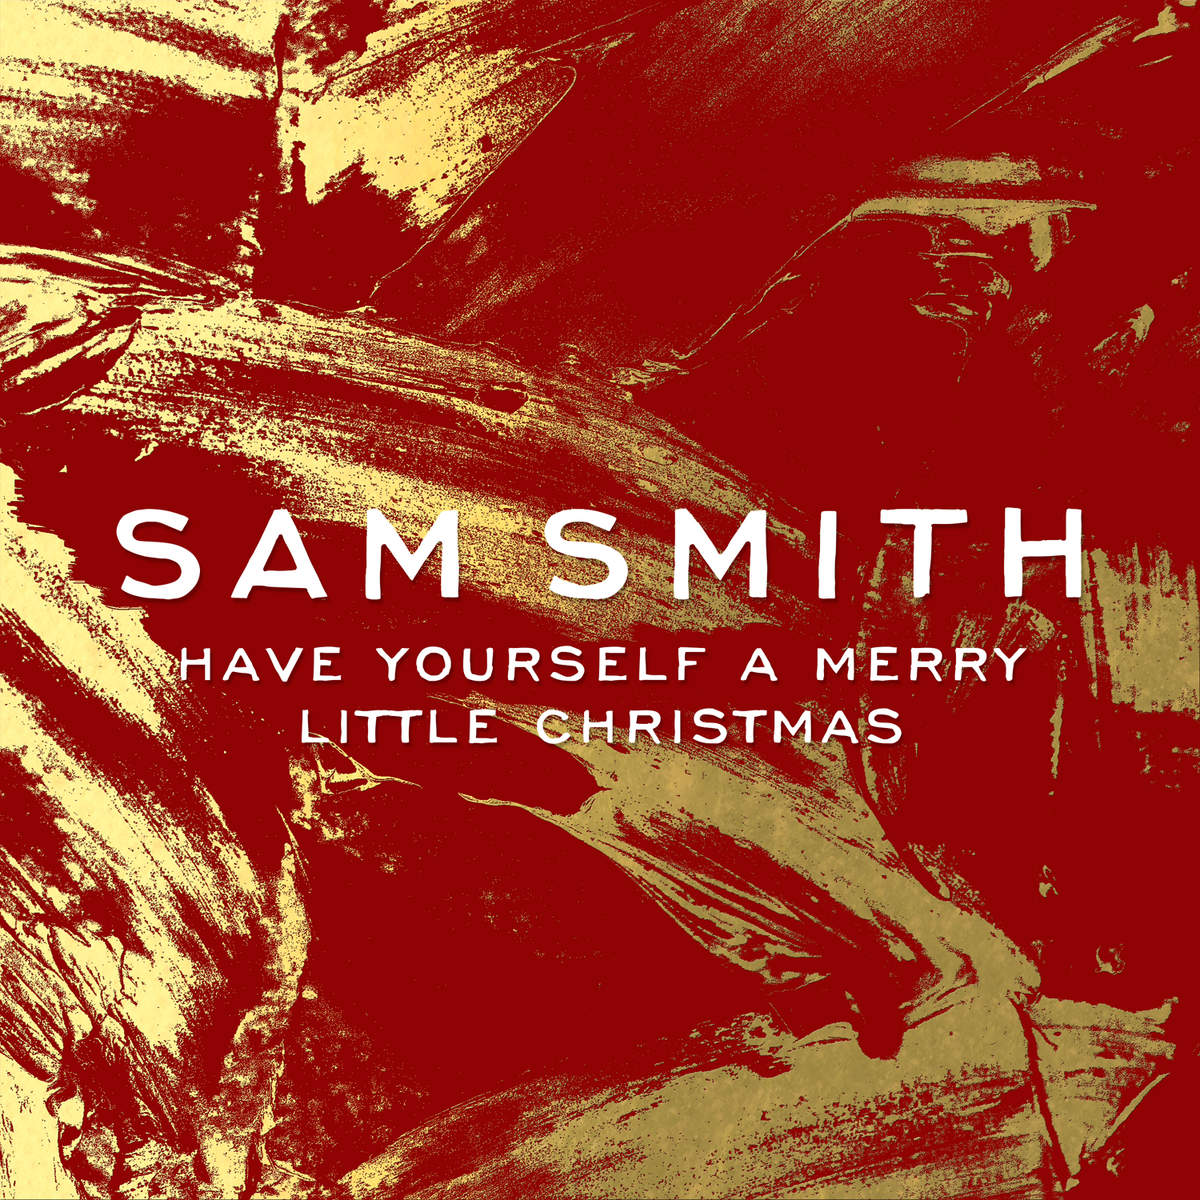 Sam Smith Have Yourself A Merry Little Christmas.Sam Smith Have Yourself A Merry Little Christmas